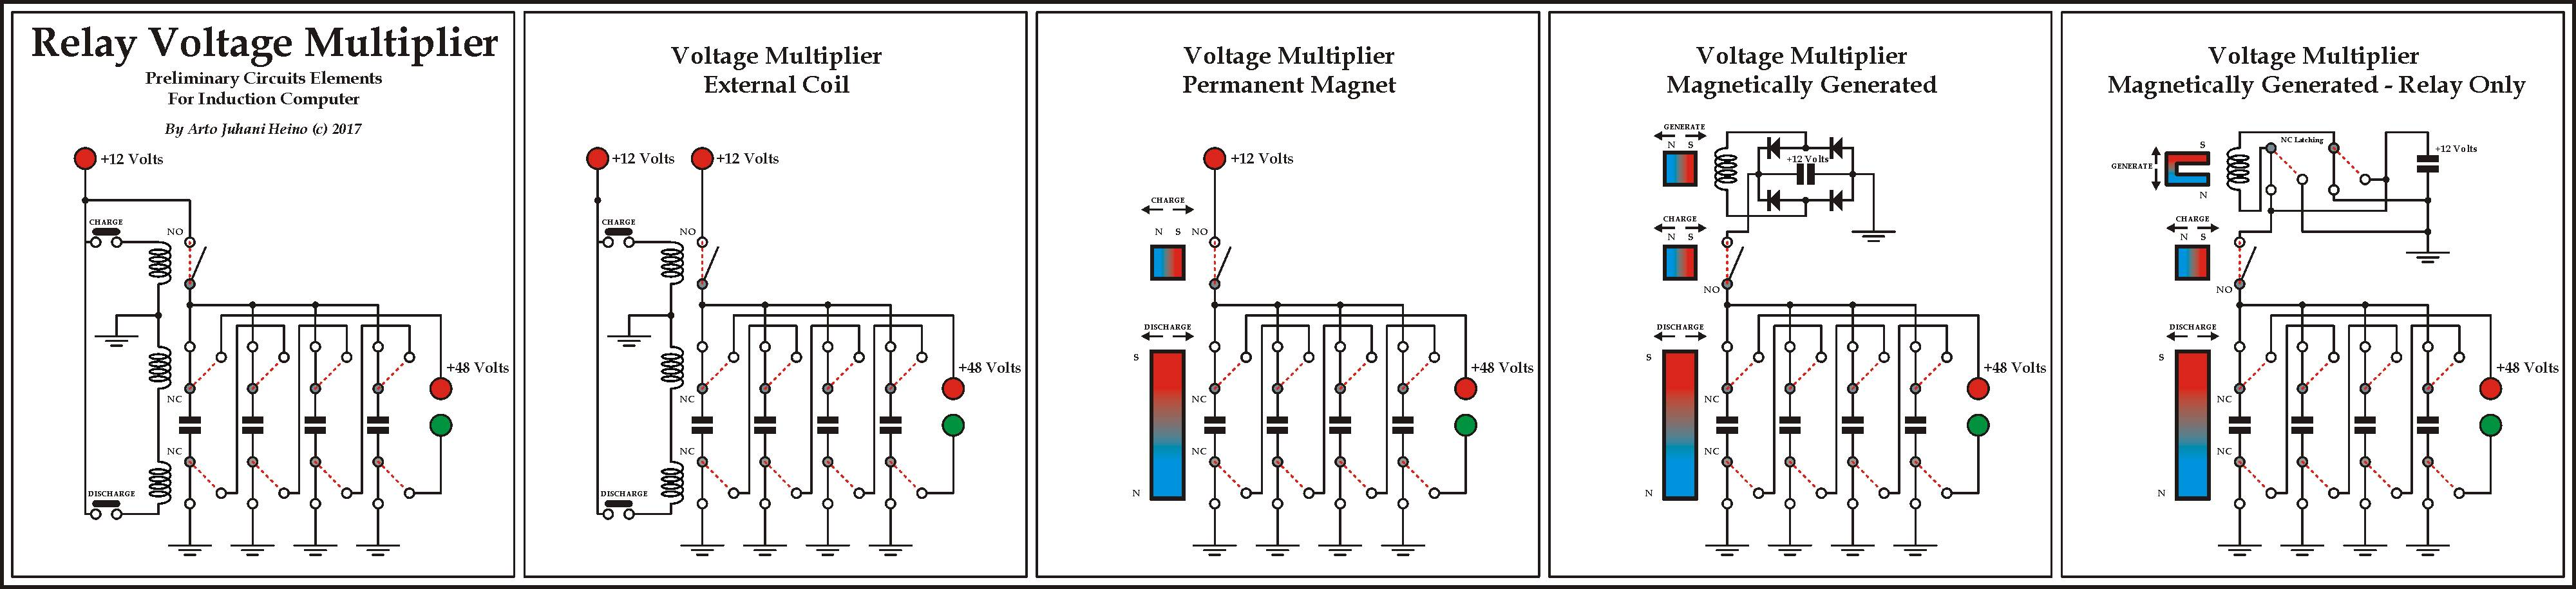 Voltage Multiplier Artojhs Renderings Relay Coil In The I Have Even Eliminated Any Semiconductors Diodes And Batteries While Only Using Coils Capacitors Magnets